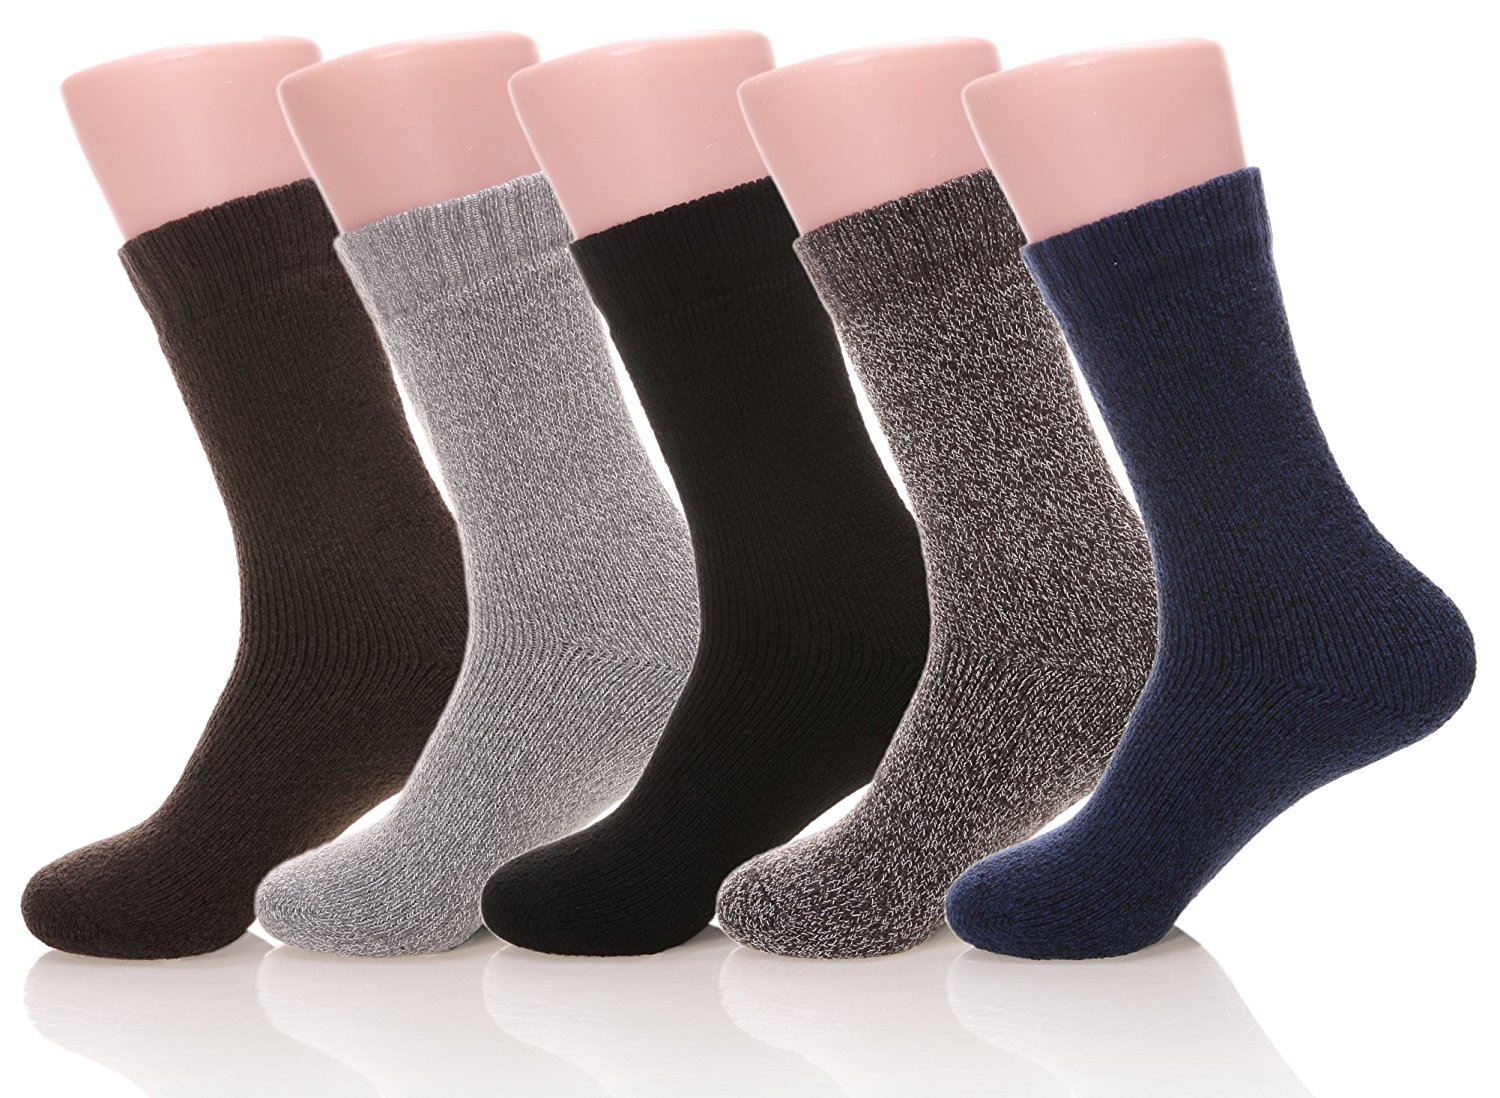 DoSmart Men's Super Thick Cotton Winter Warm Socks - 5 Pairs Hight Quality Socks